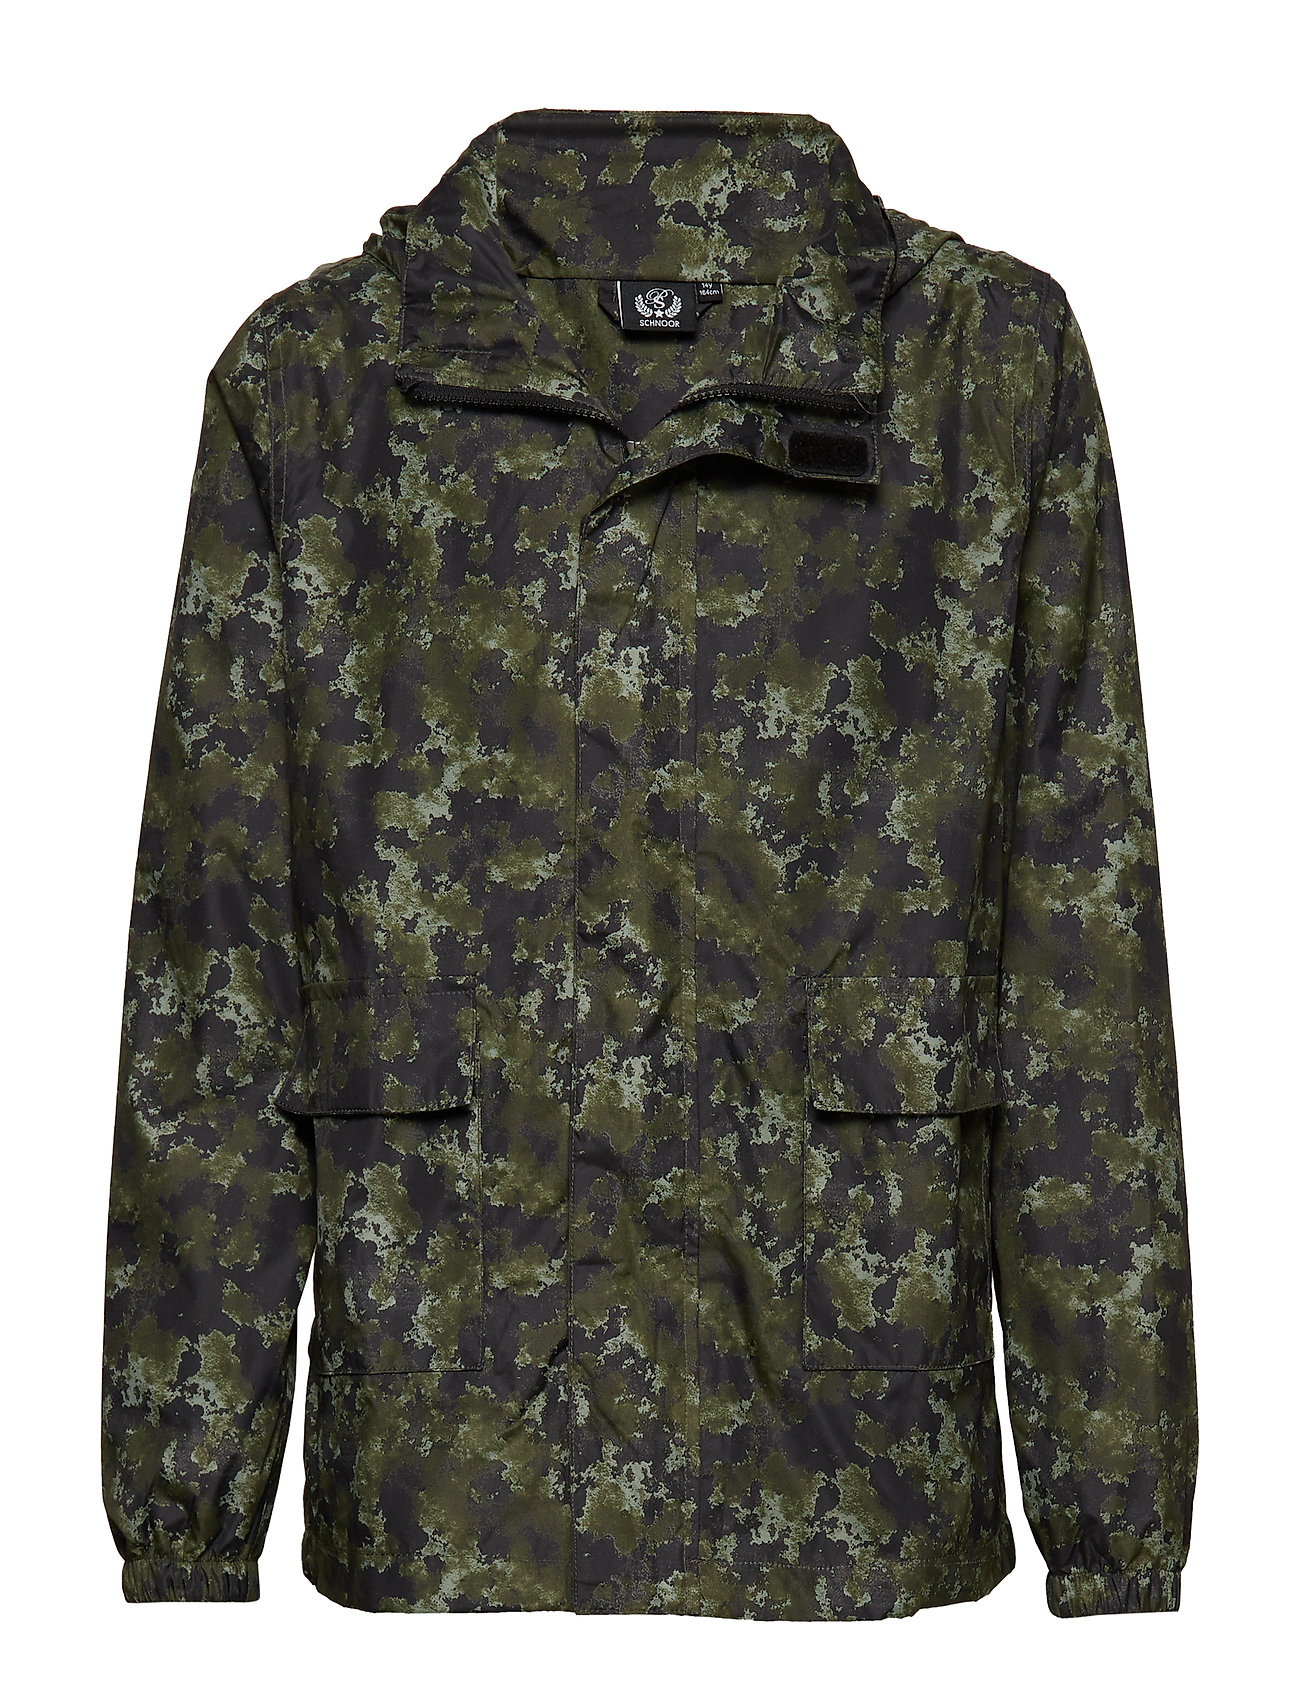 0cd421e0726 Jacket (Olive) (37.77 €) - Petit by Sofie Schnoor - | Boozt.com